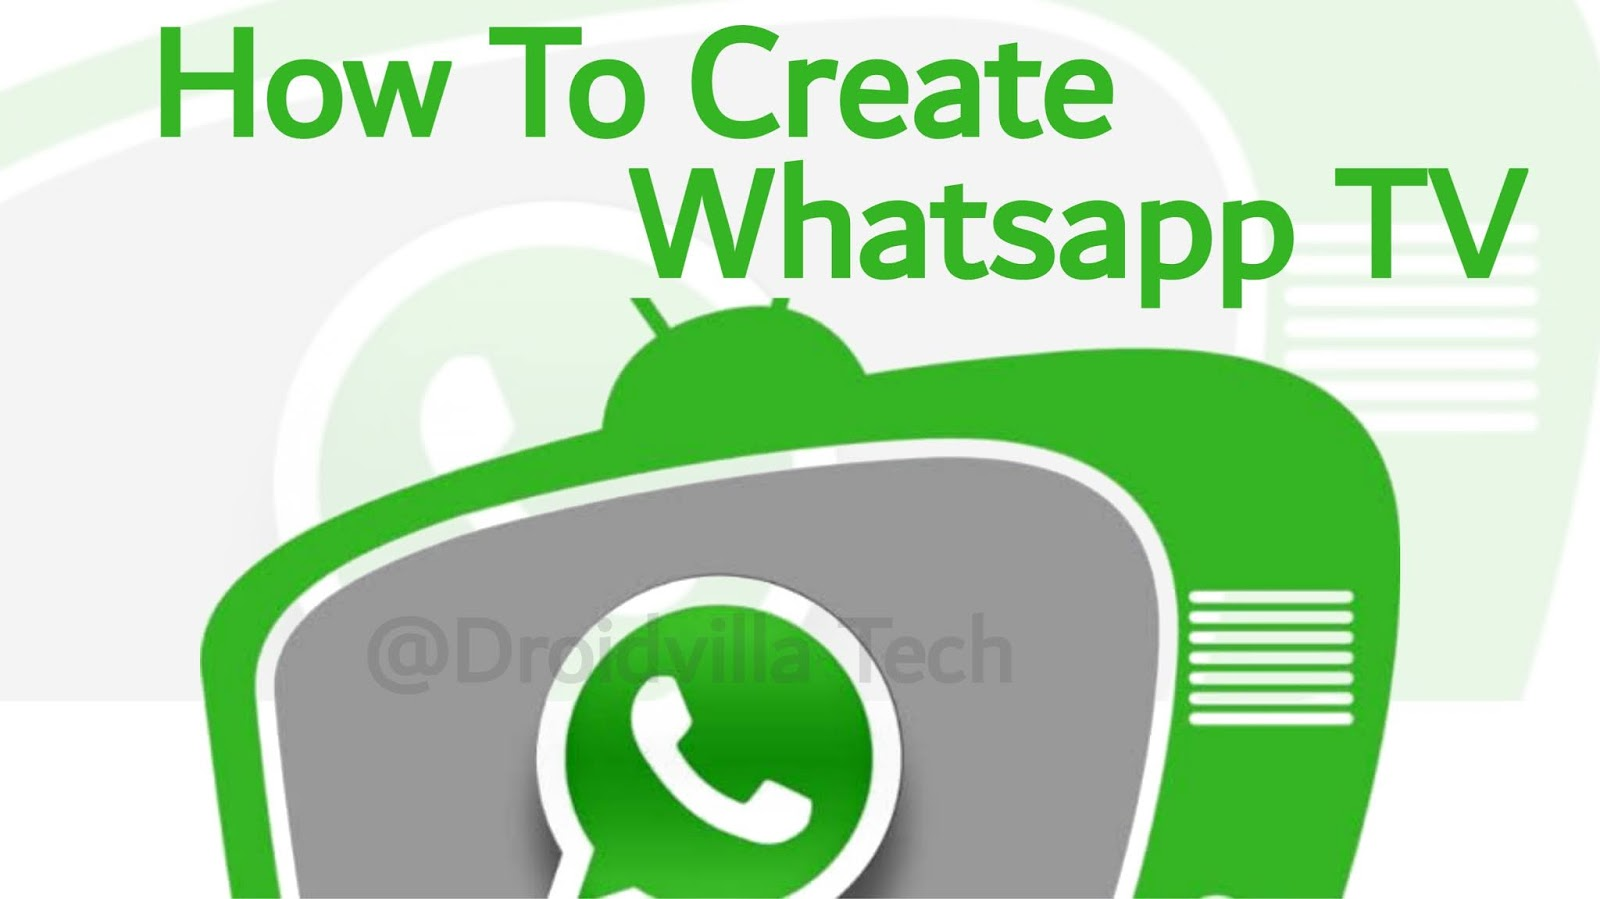 Create Whatsapp TV